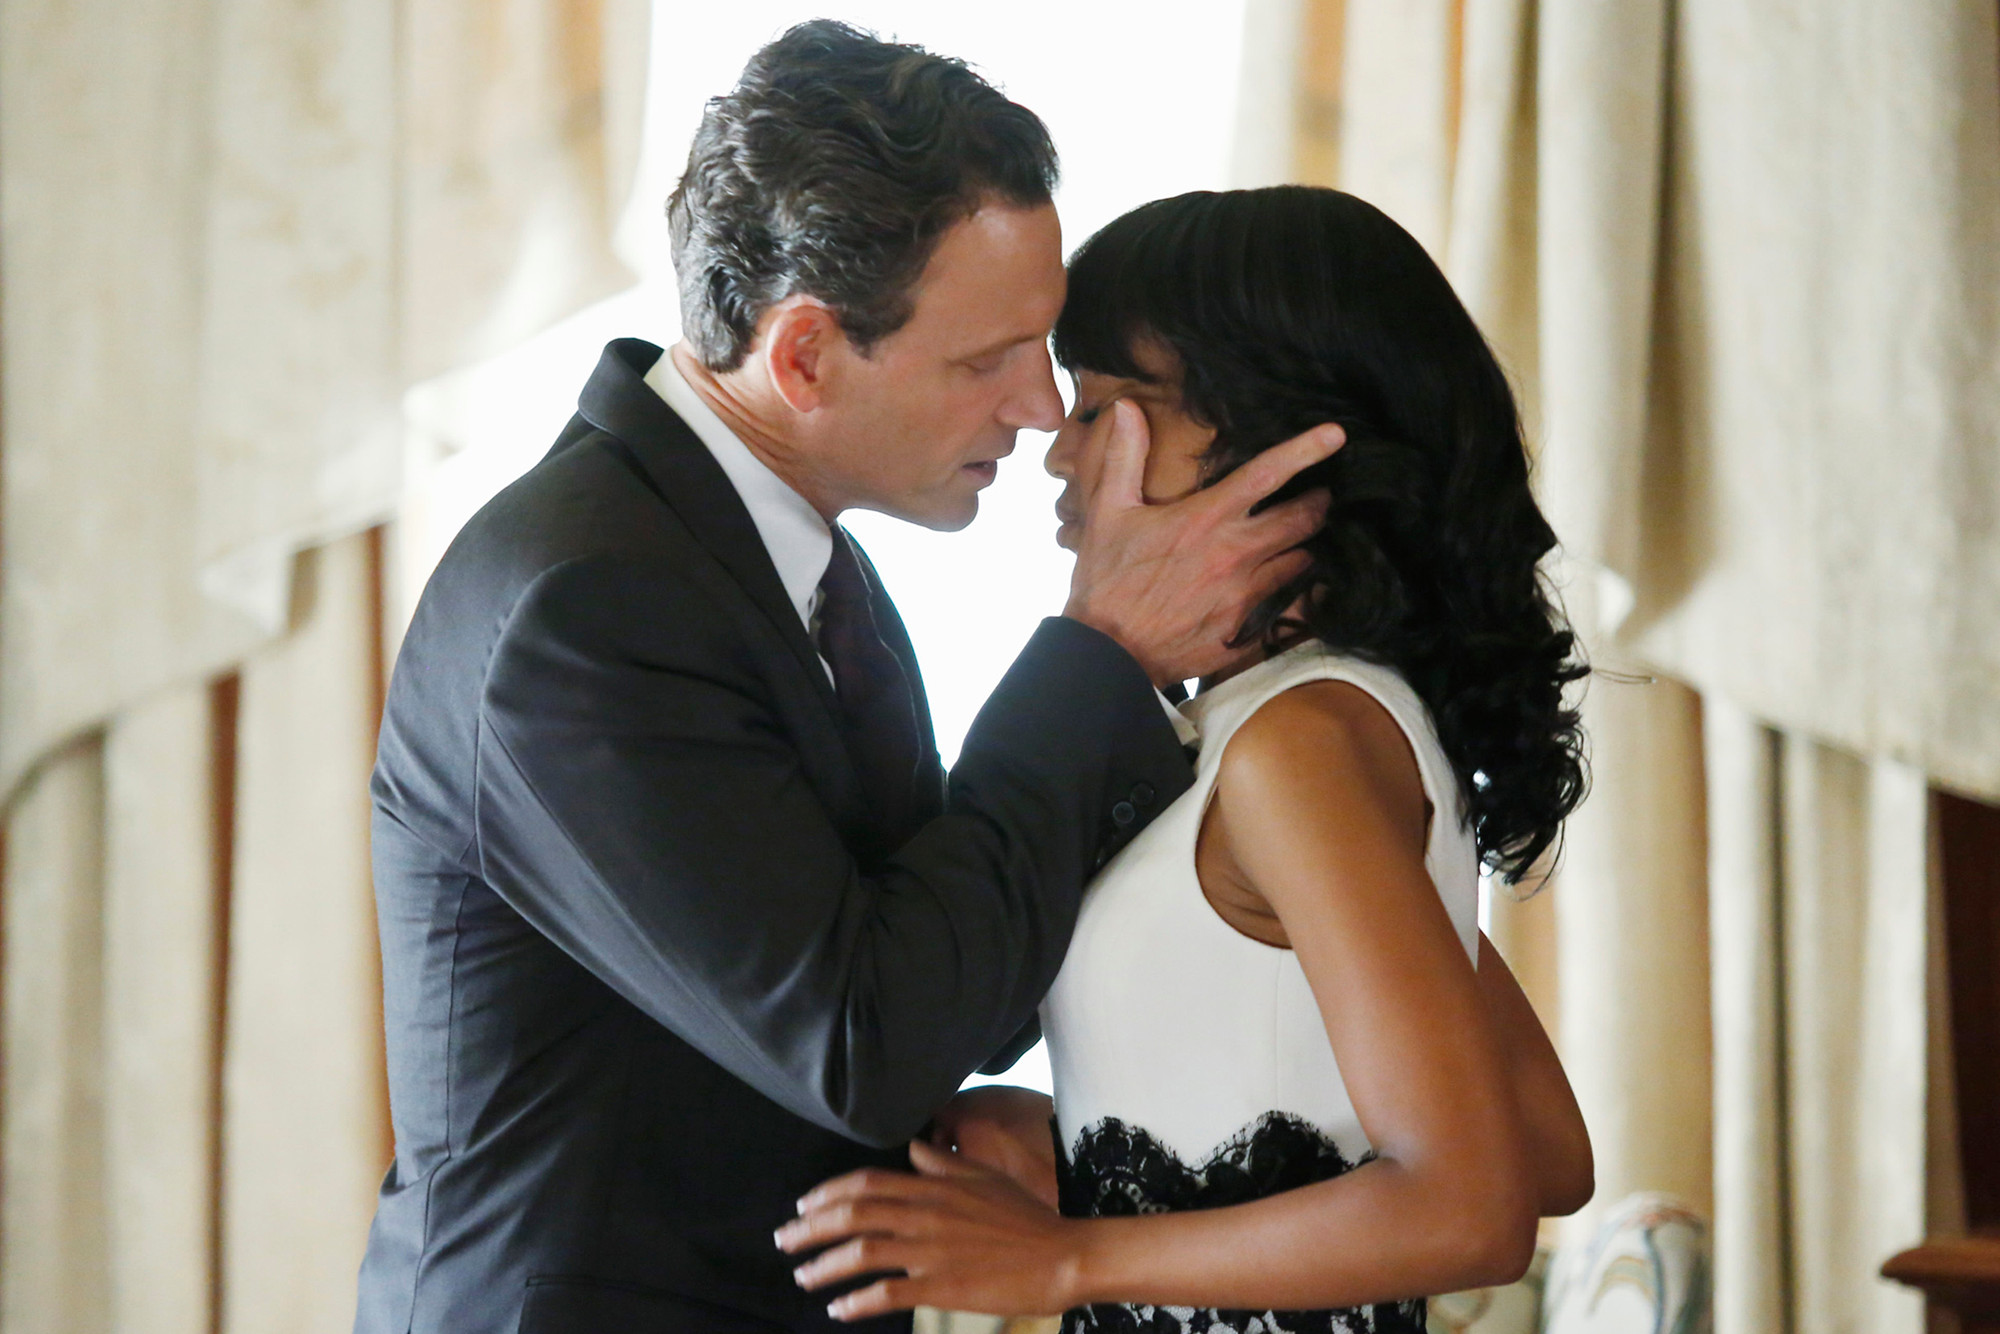 Tony Goldwyn, a white man, kisses Kerry Washington, a Black woman, kiss in the Oval Office on Scandal